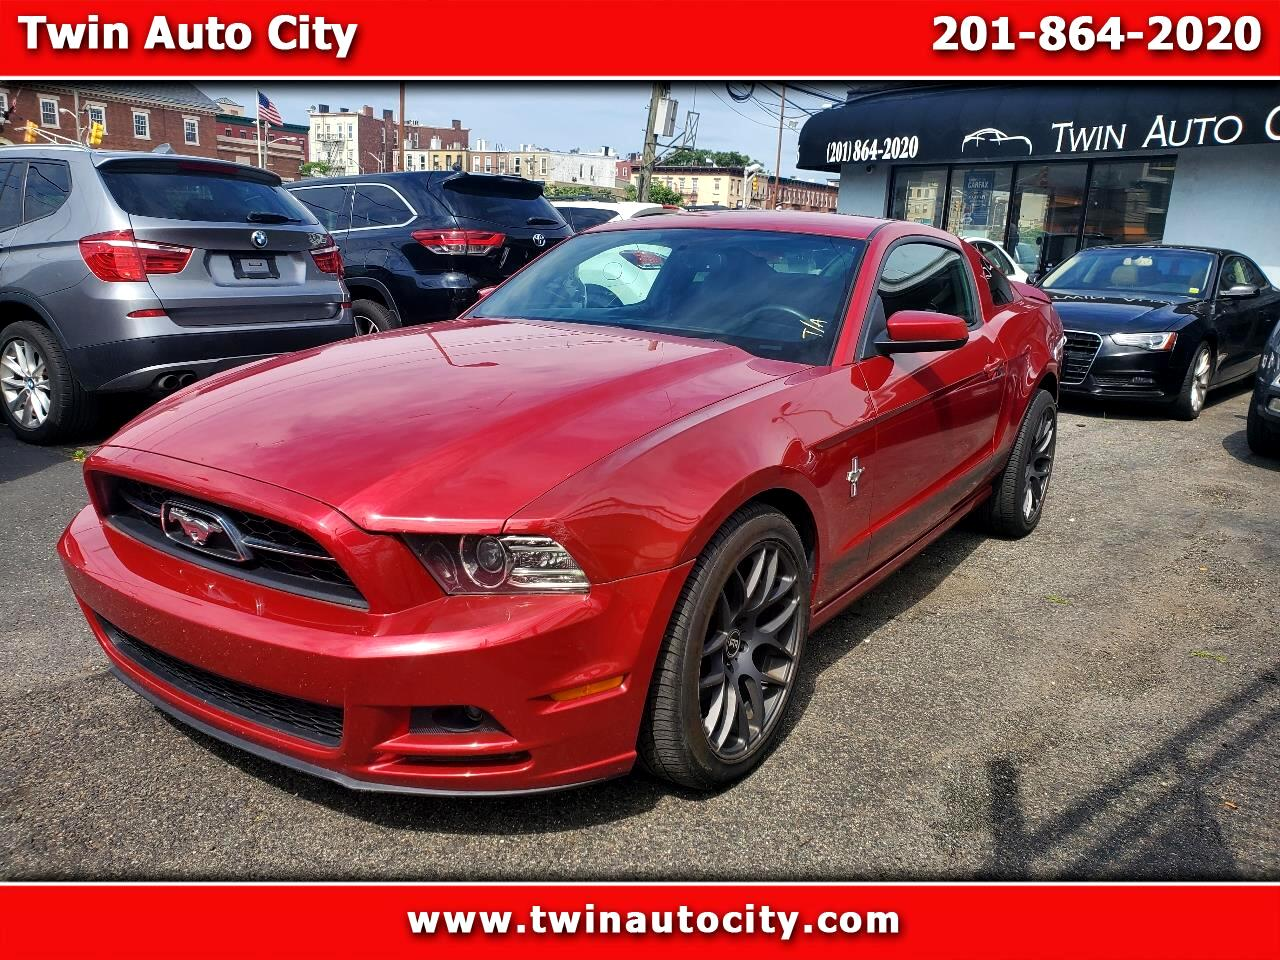 Ford Mustang 2dr Cpe V6 2013